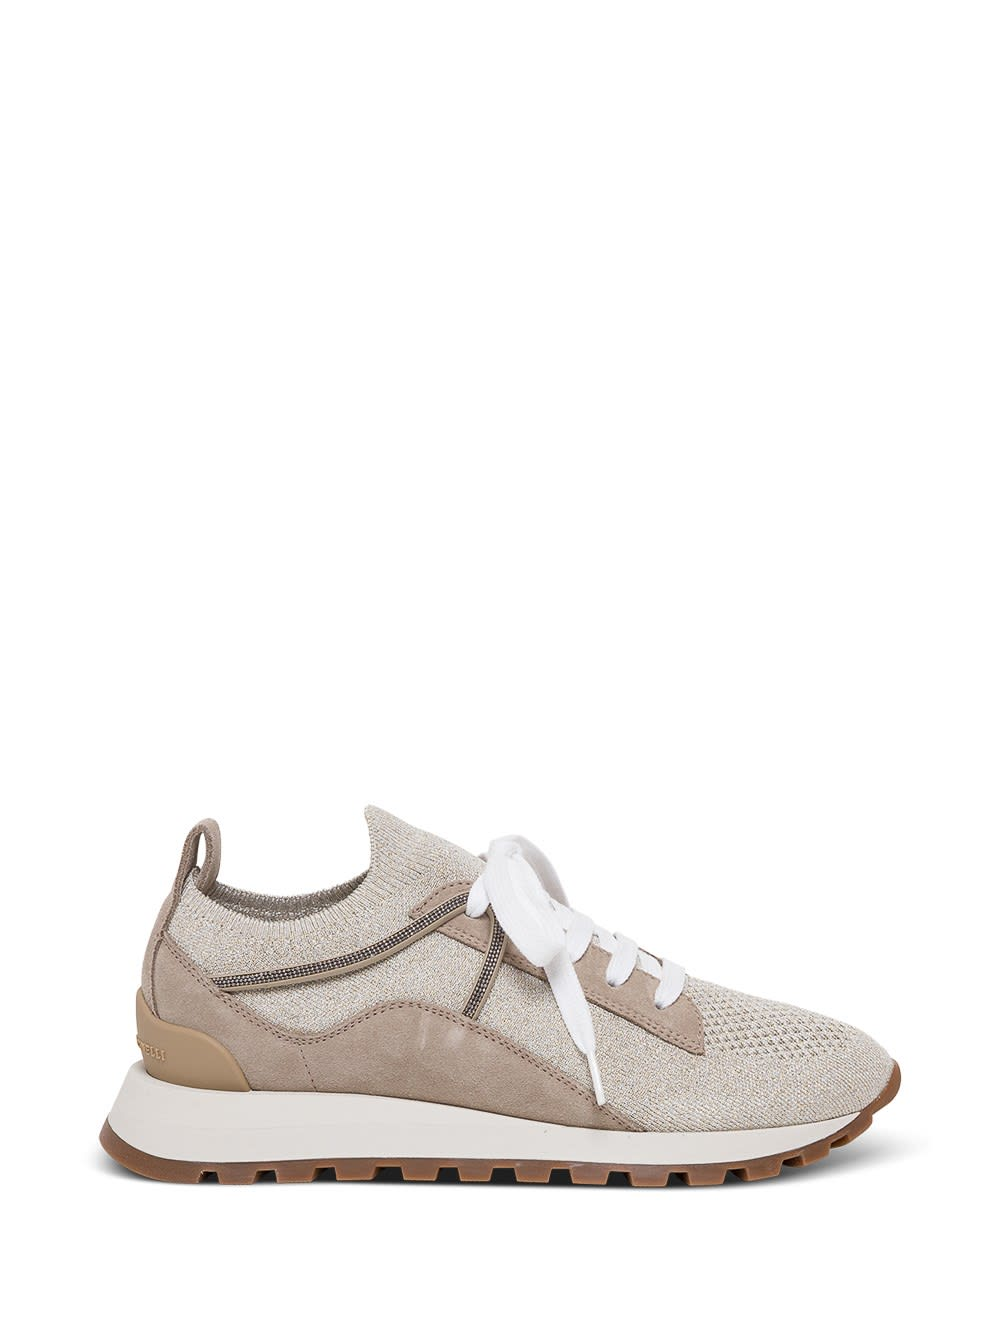 Brunello Cucinelli Sneakers LACE-UP SNEAKERS WITH PANELS AND MONILE DETAIL